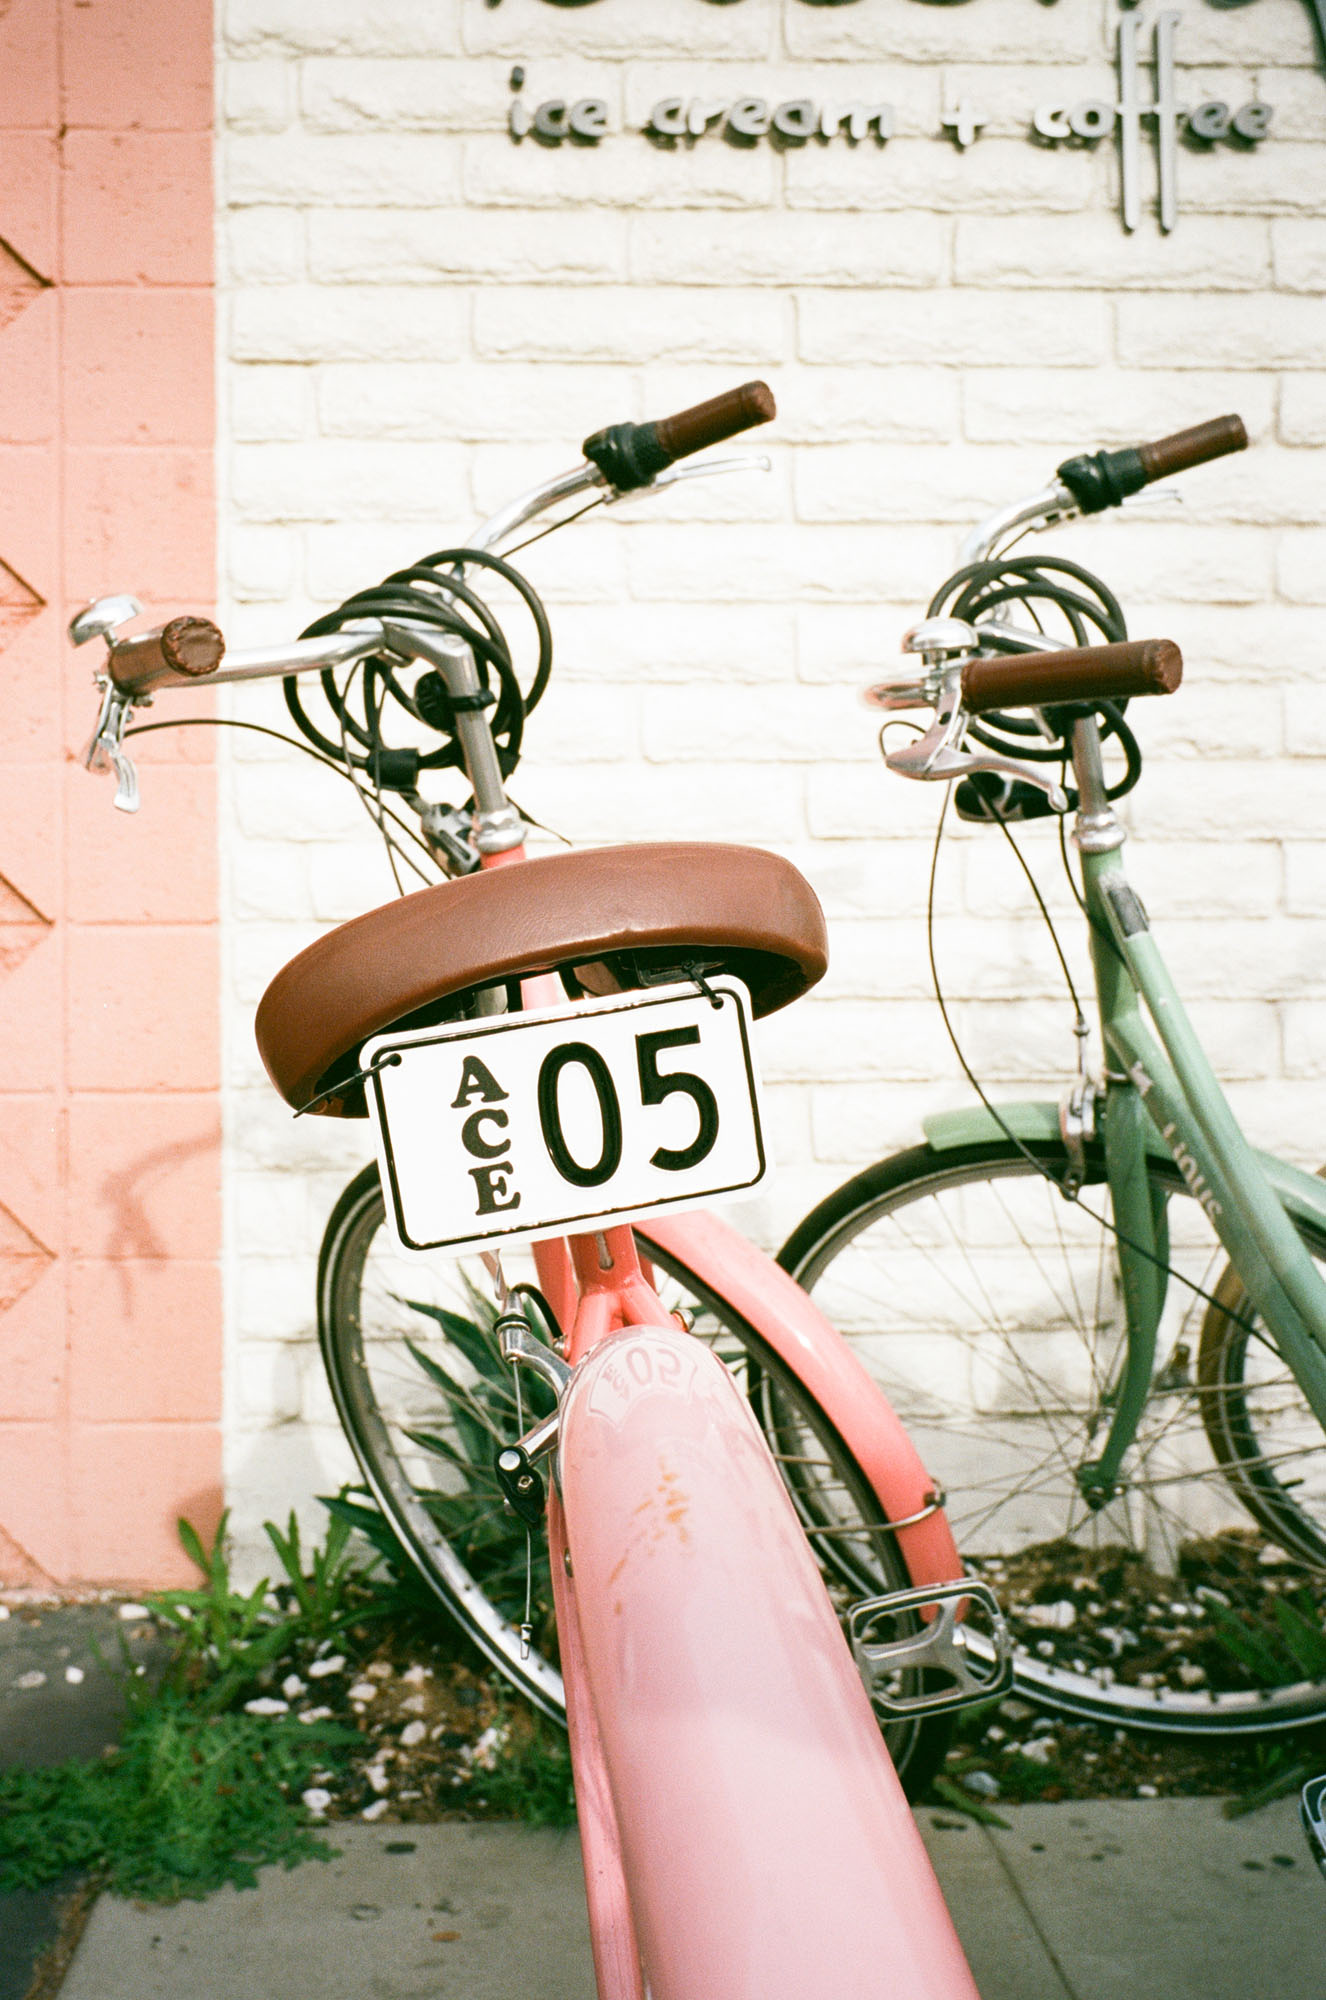 ace-hotel-bikes-palm-springs-california-film-photography